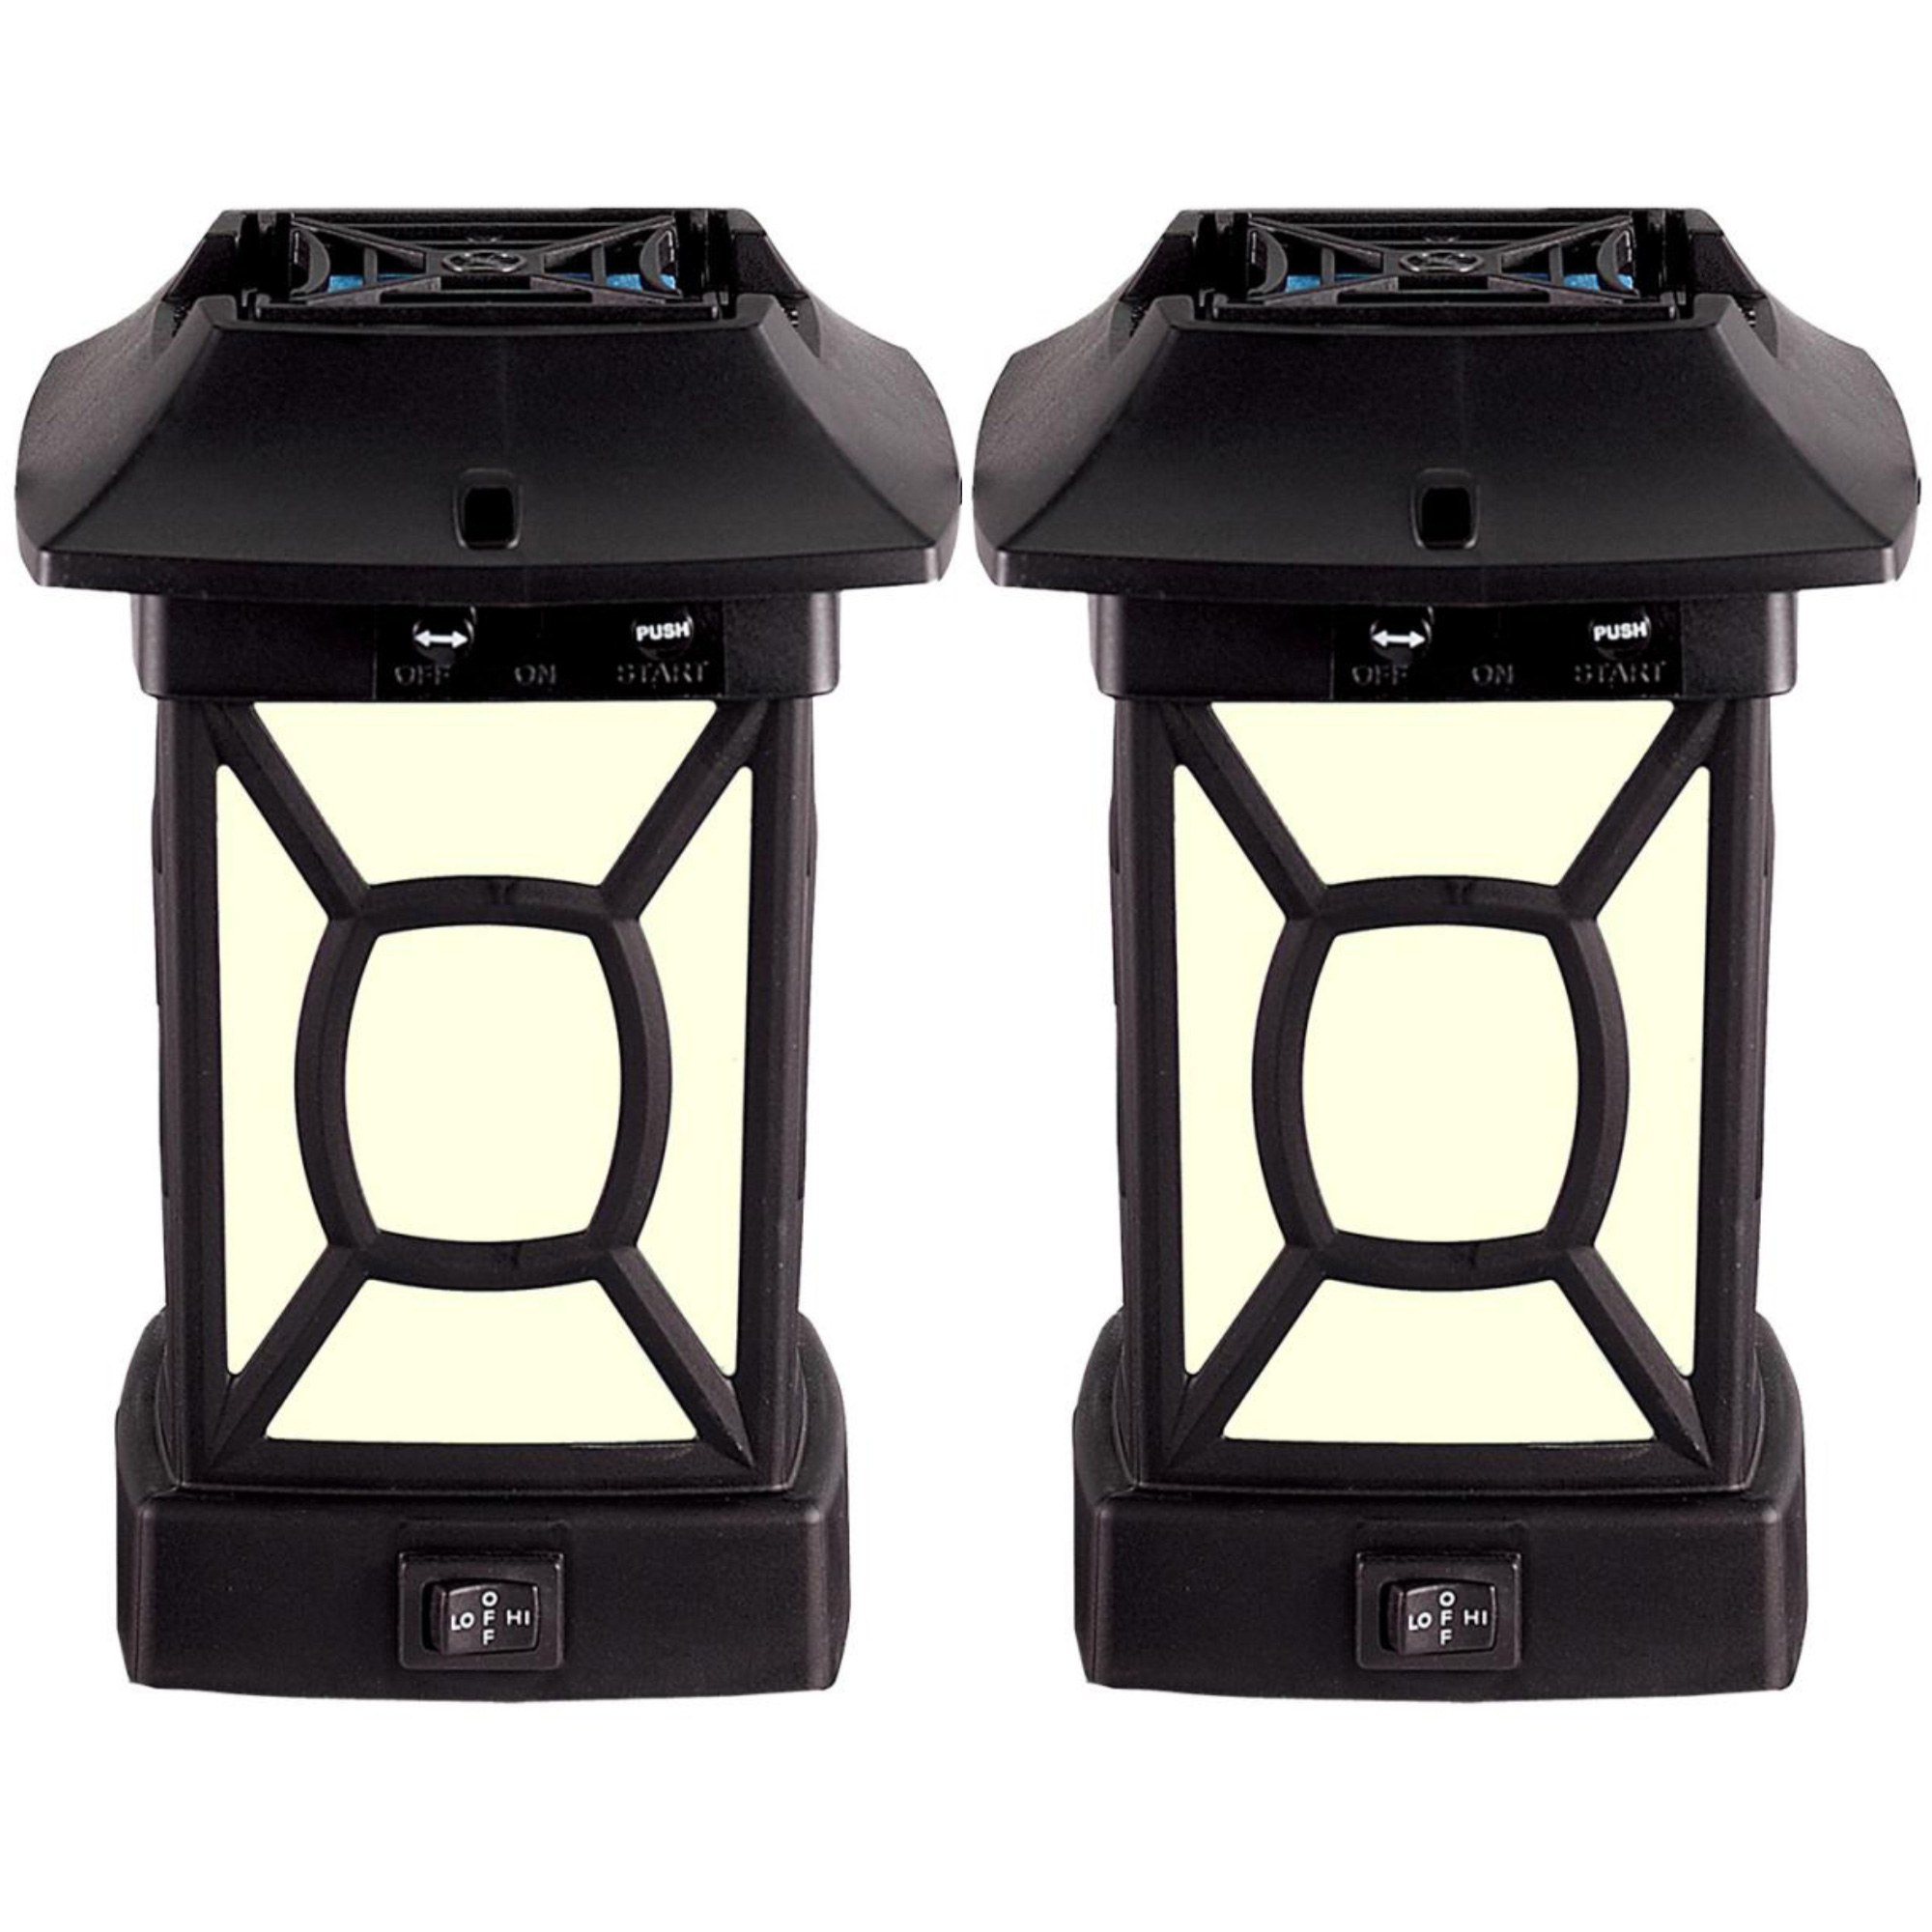 ThermaCELL Outdoor Mosquito Repeller + Lantern, Cambridge Patio Shield, 2-Pack by Thermacell